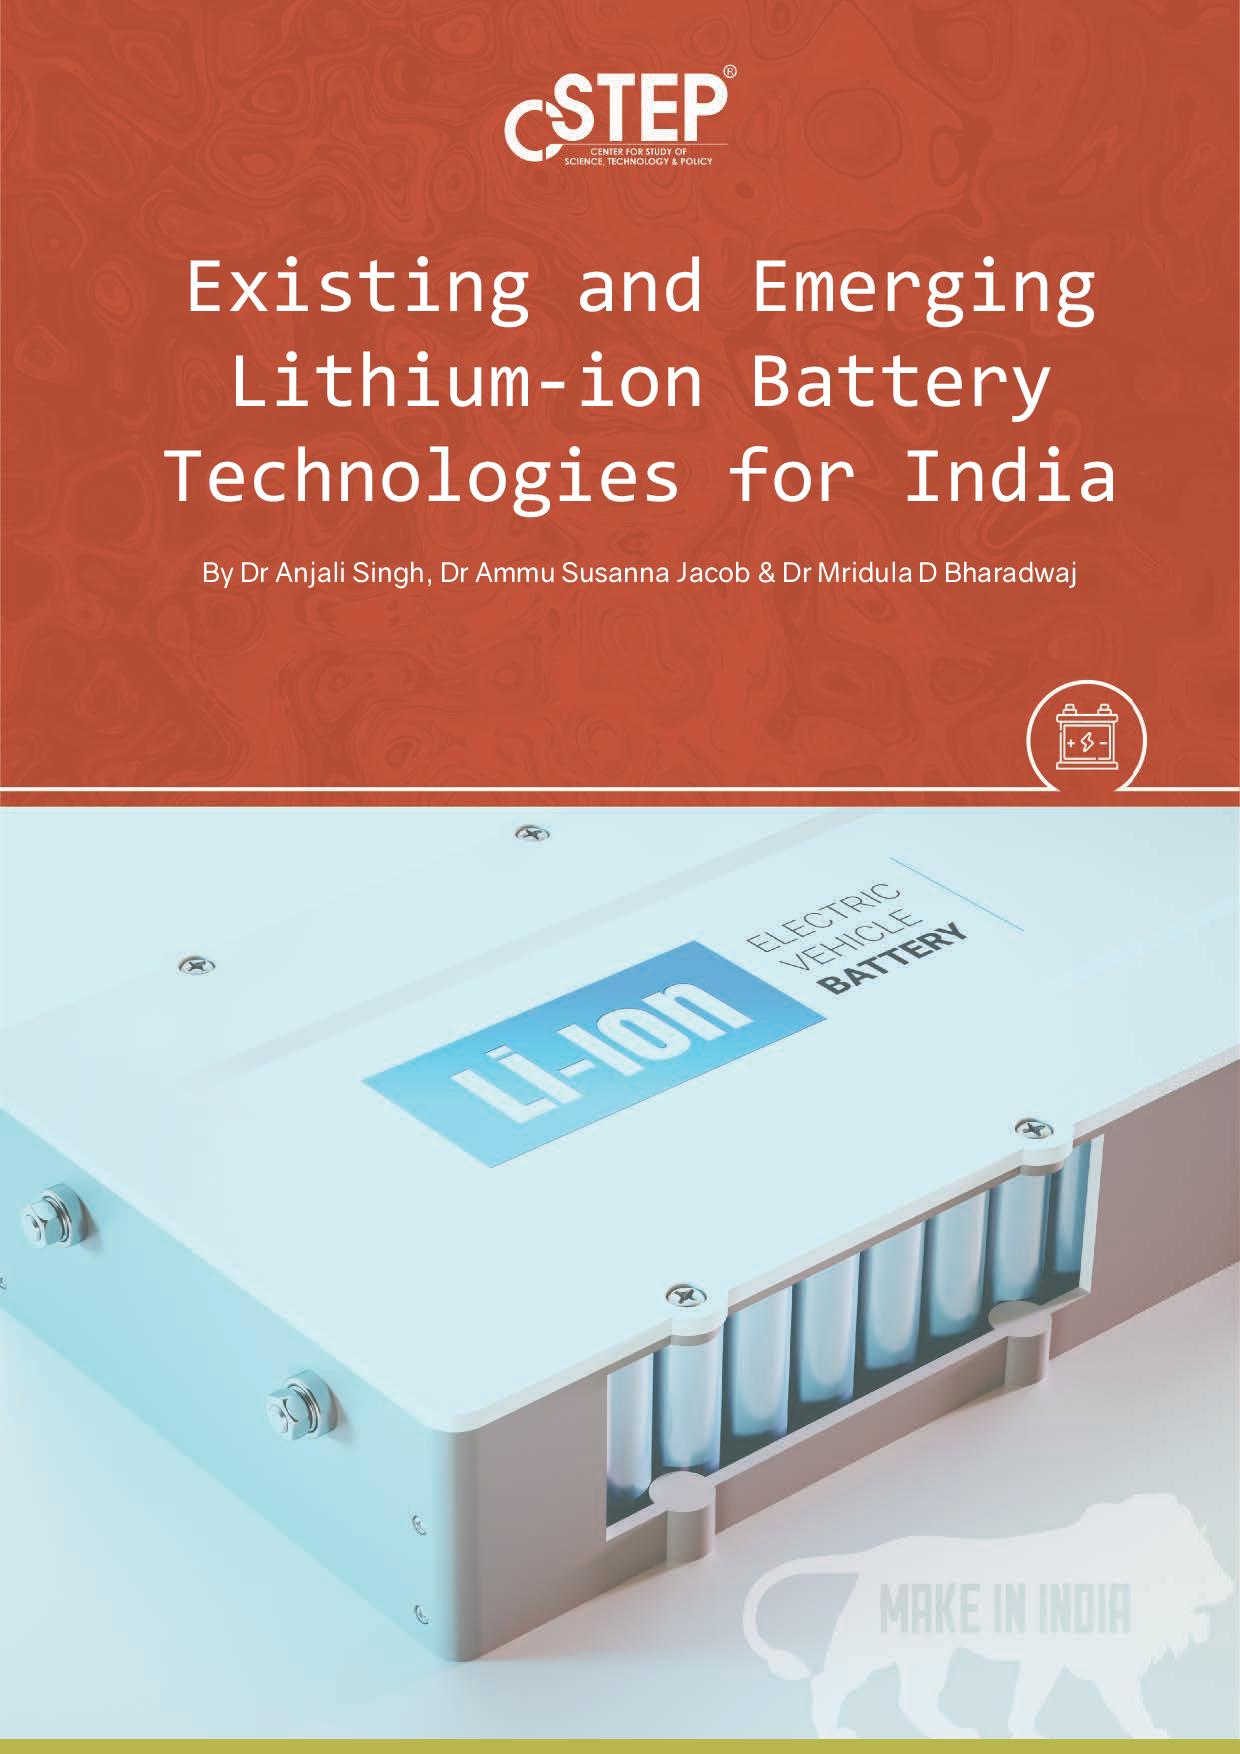 Existing and Emerging Lithium-ion Battery Technologies for India